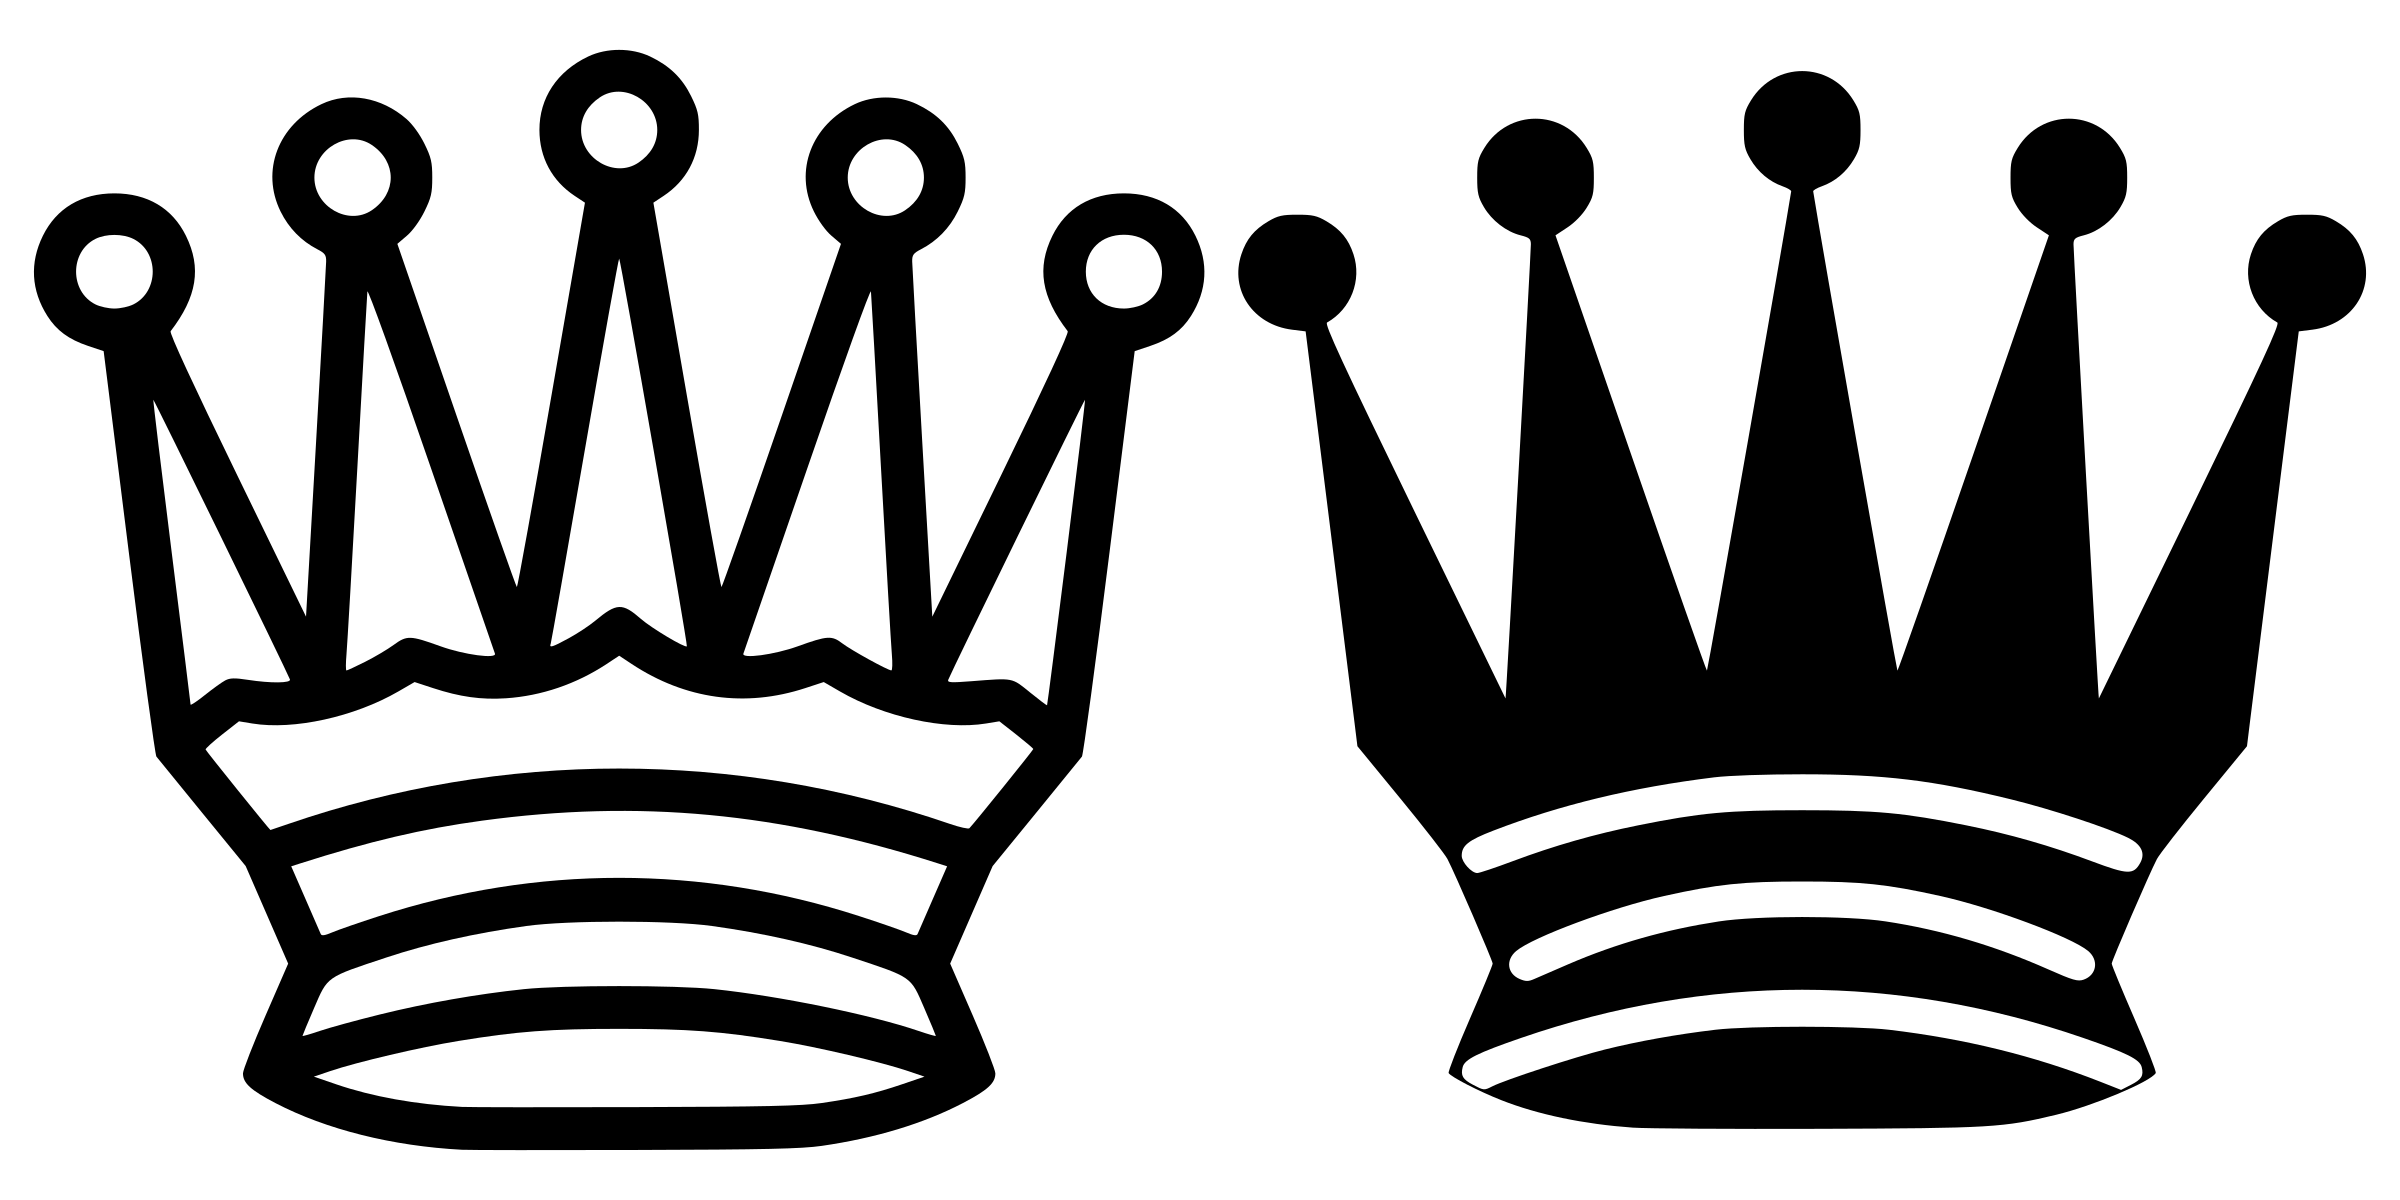 Black and white crown clipart queen svg transparent Clipart - Chess tile - Queen svg transparent